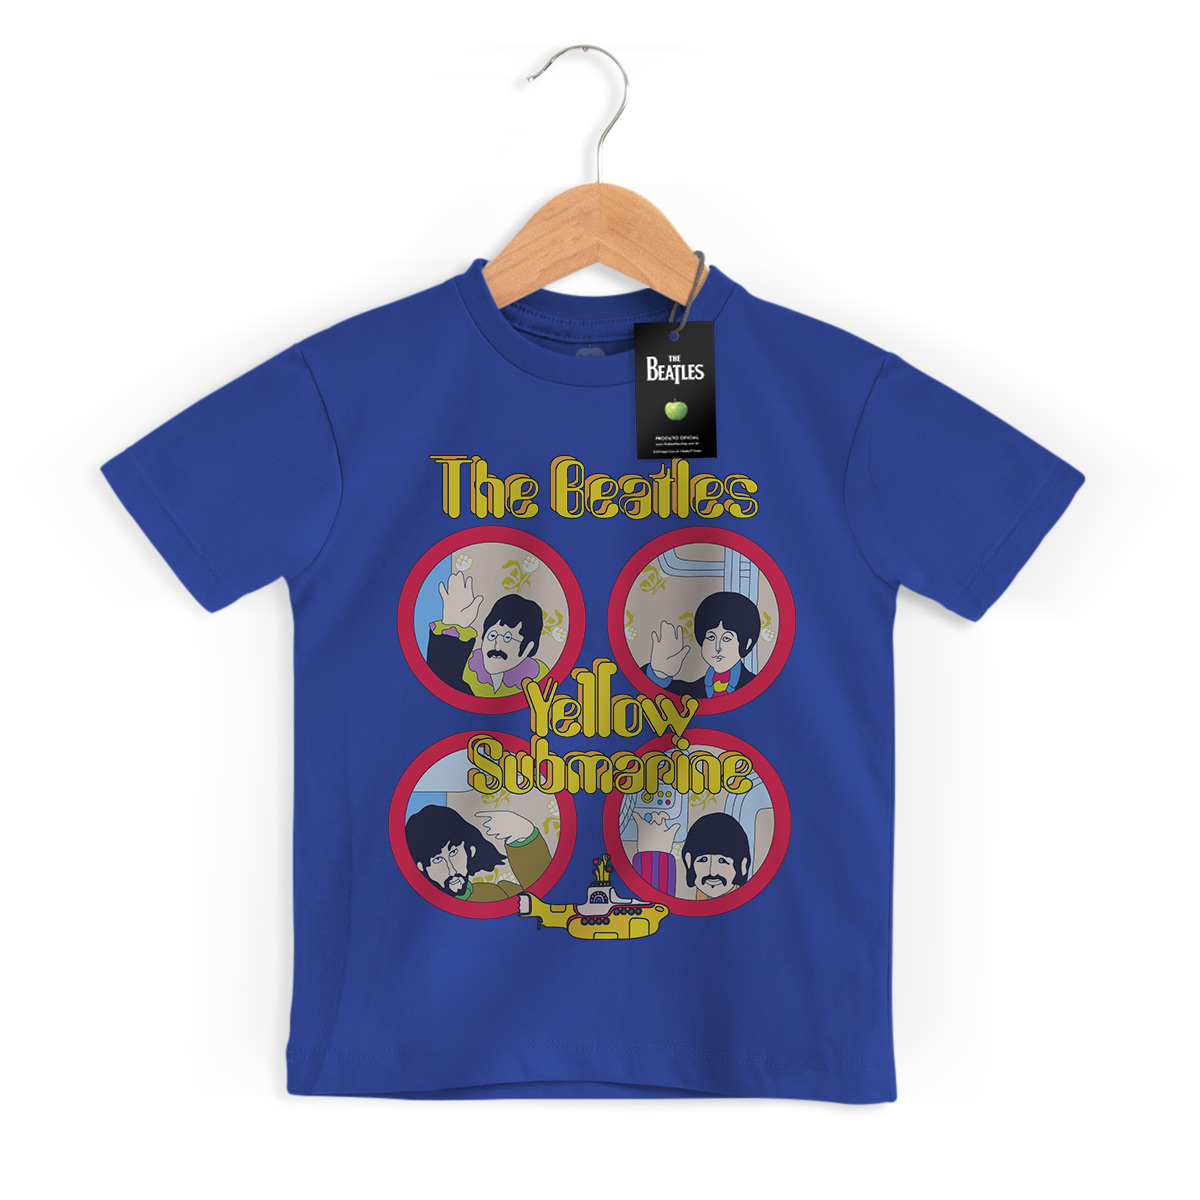 Camiseta Infantil The Beatles Yellow Submarine Original